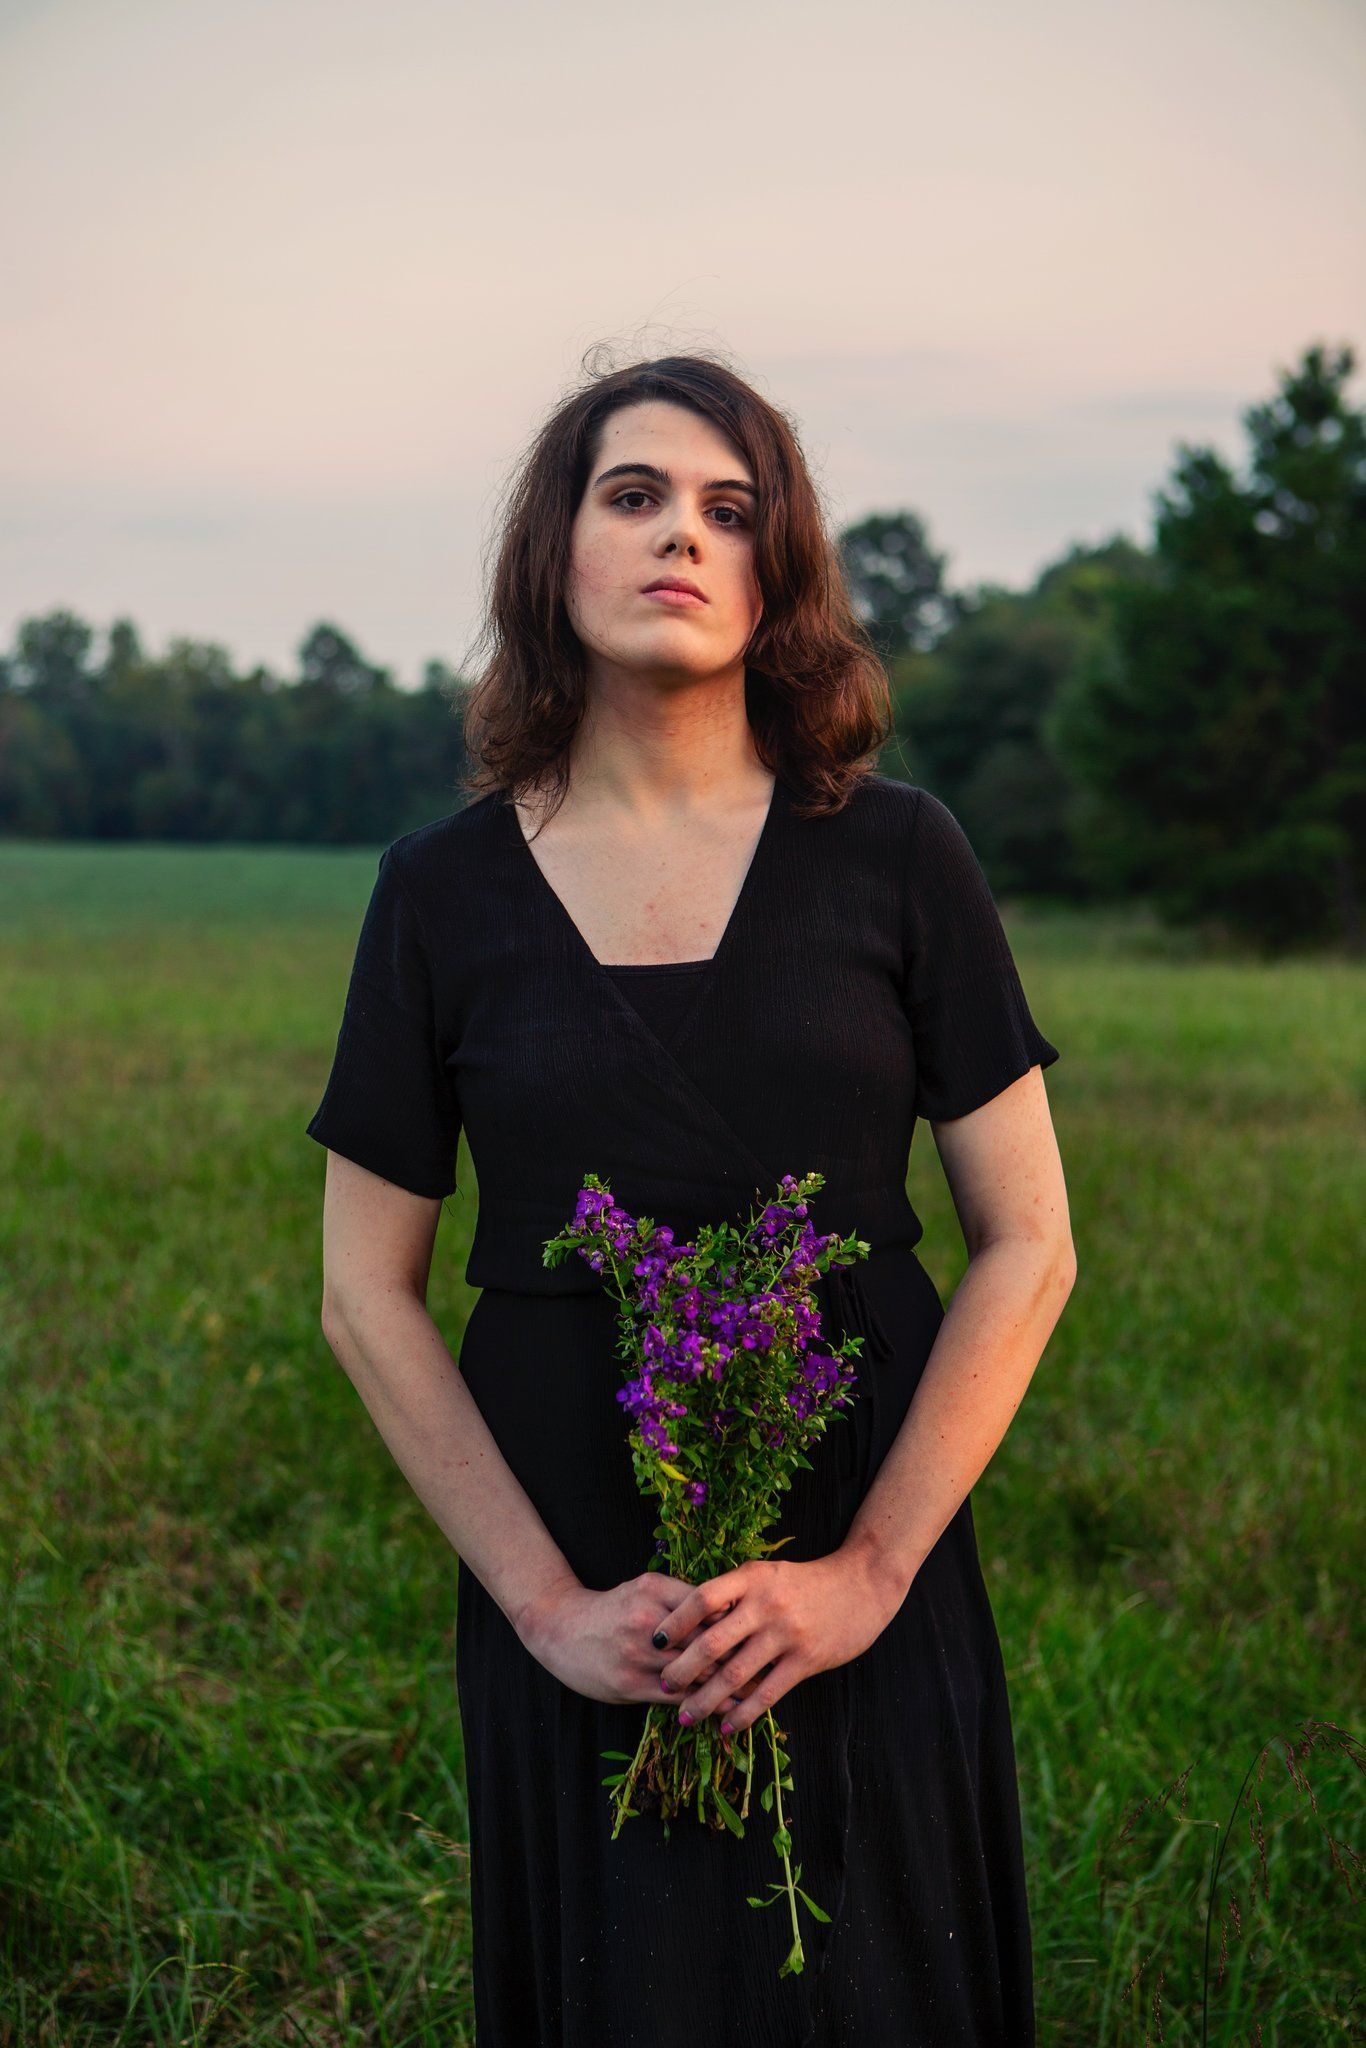 The Struggles of Rejecting the Gender Binary - The New